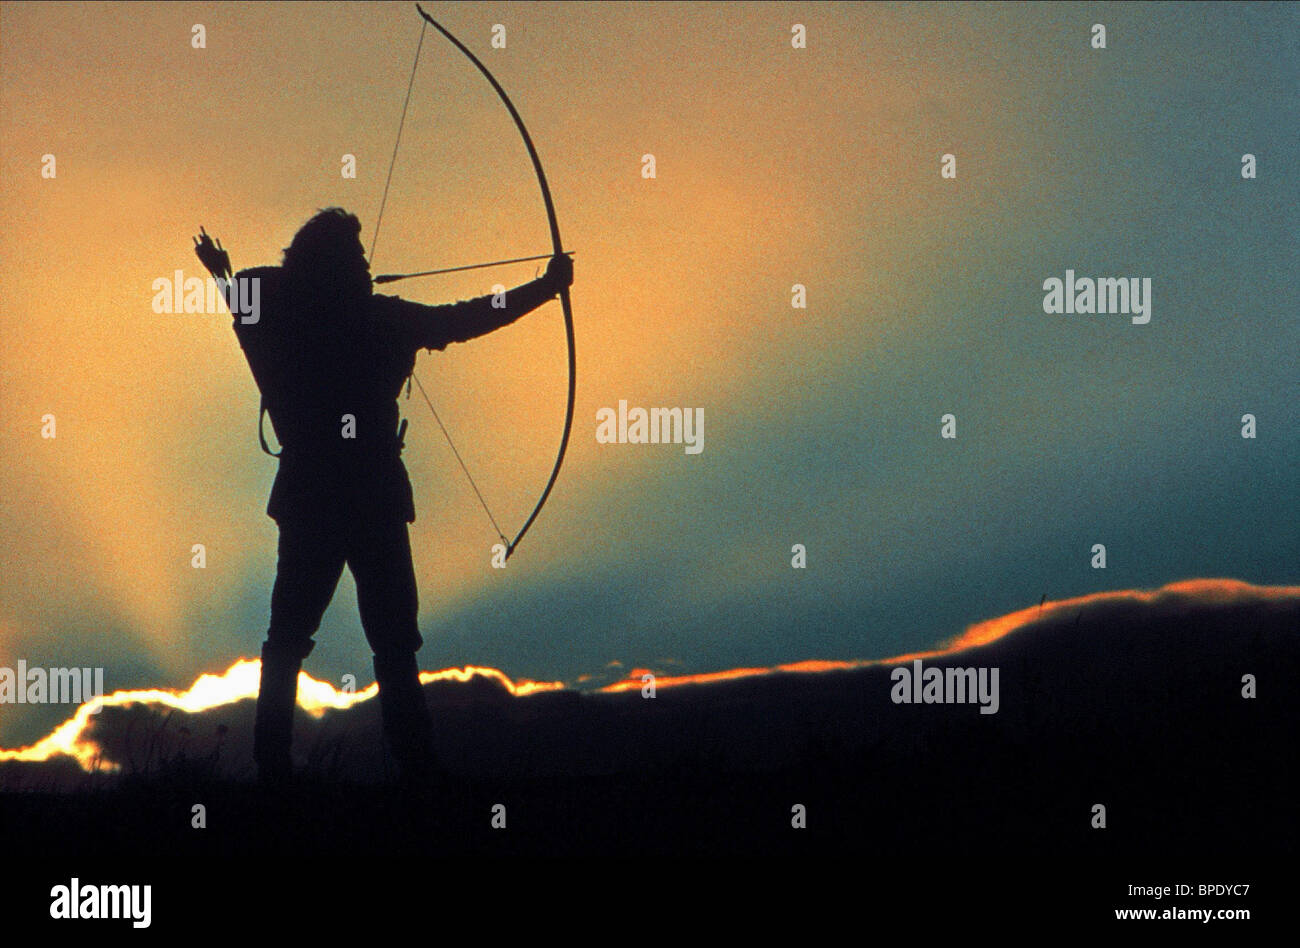 KEVIN COSTNER ROBIN HOOD: PRINCE OF THIEVES (1991) - Stock Image